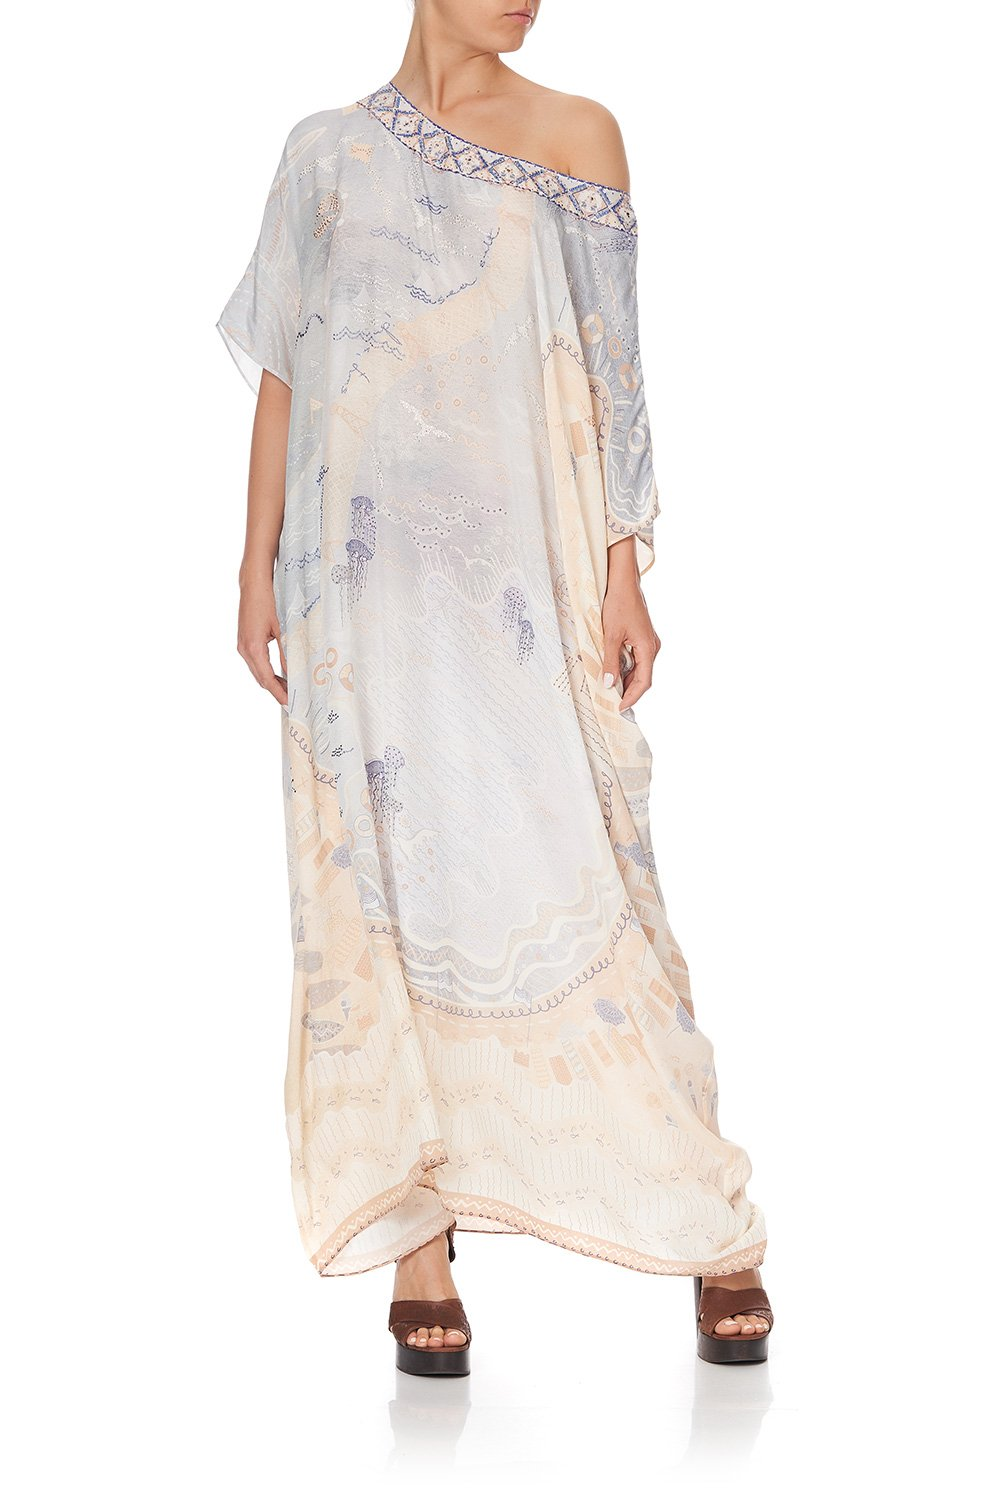 ROUND NECK KAFTAN DAWNING HOME LIGHT